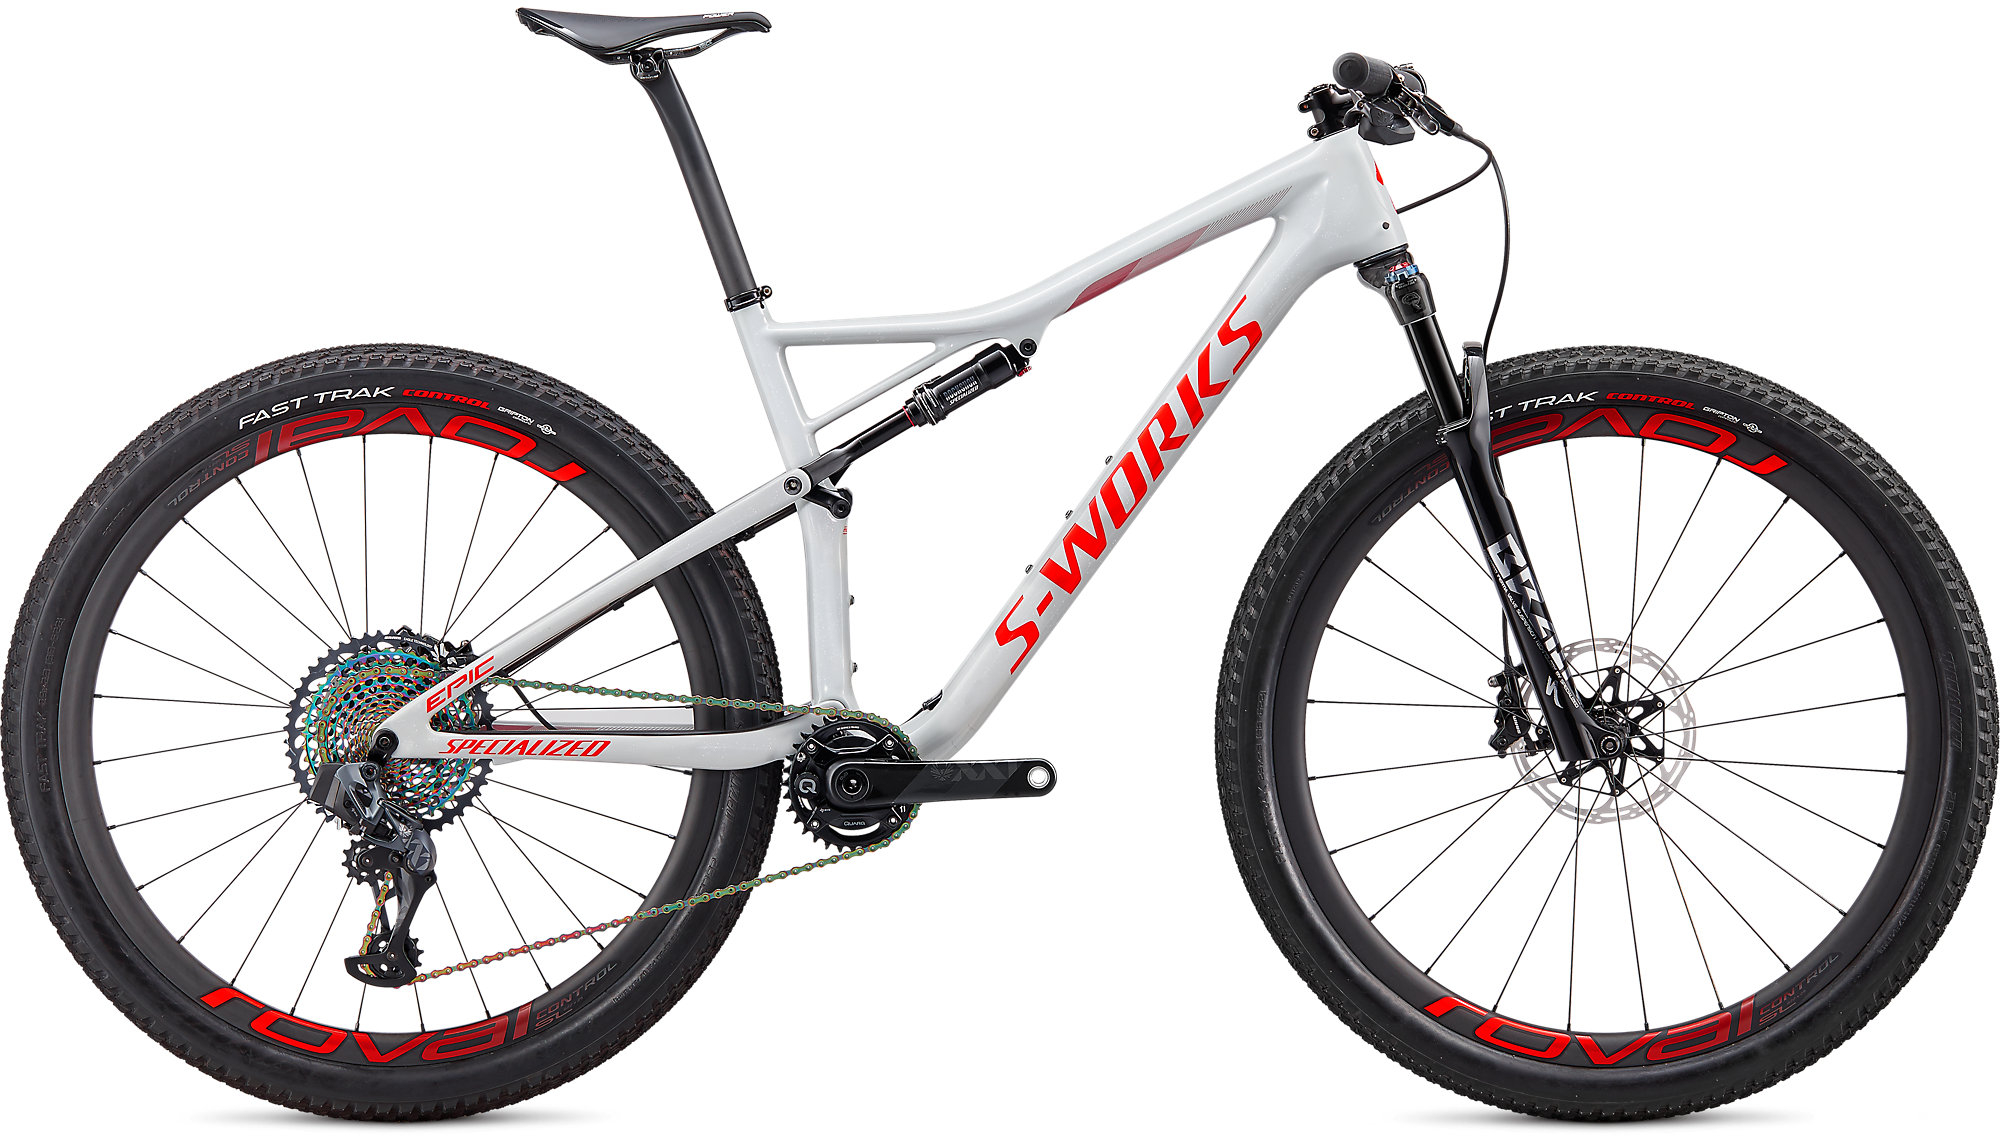 2020 Specialized S-Works Epic AXS - Specialized Concept Store